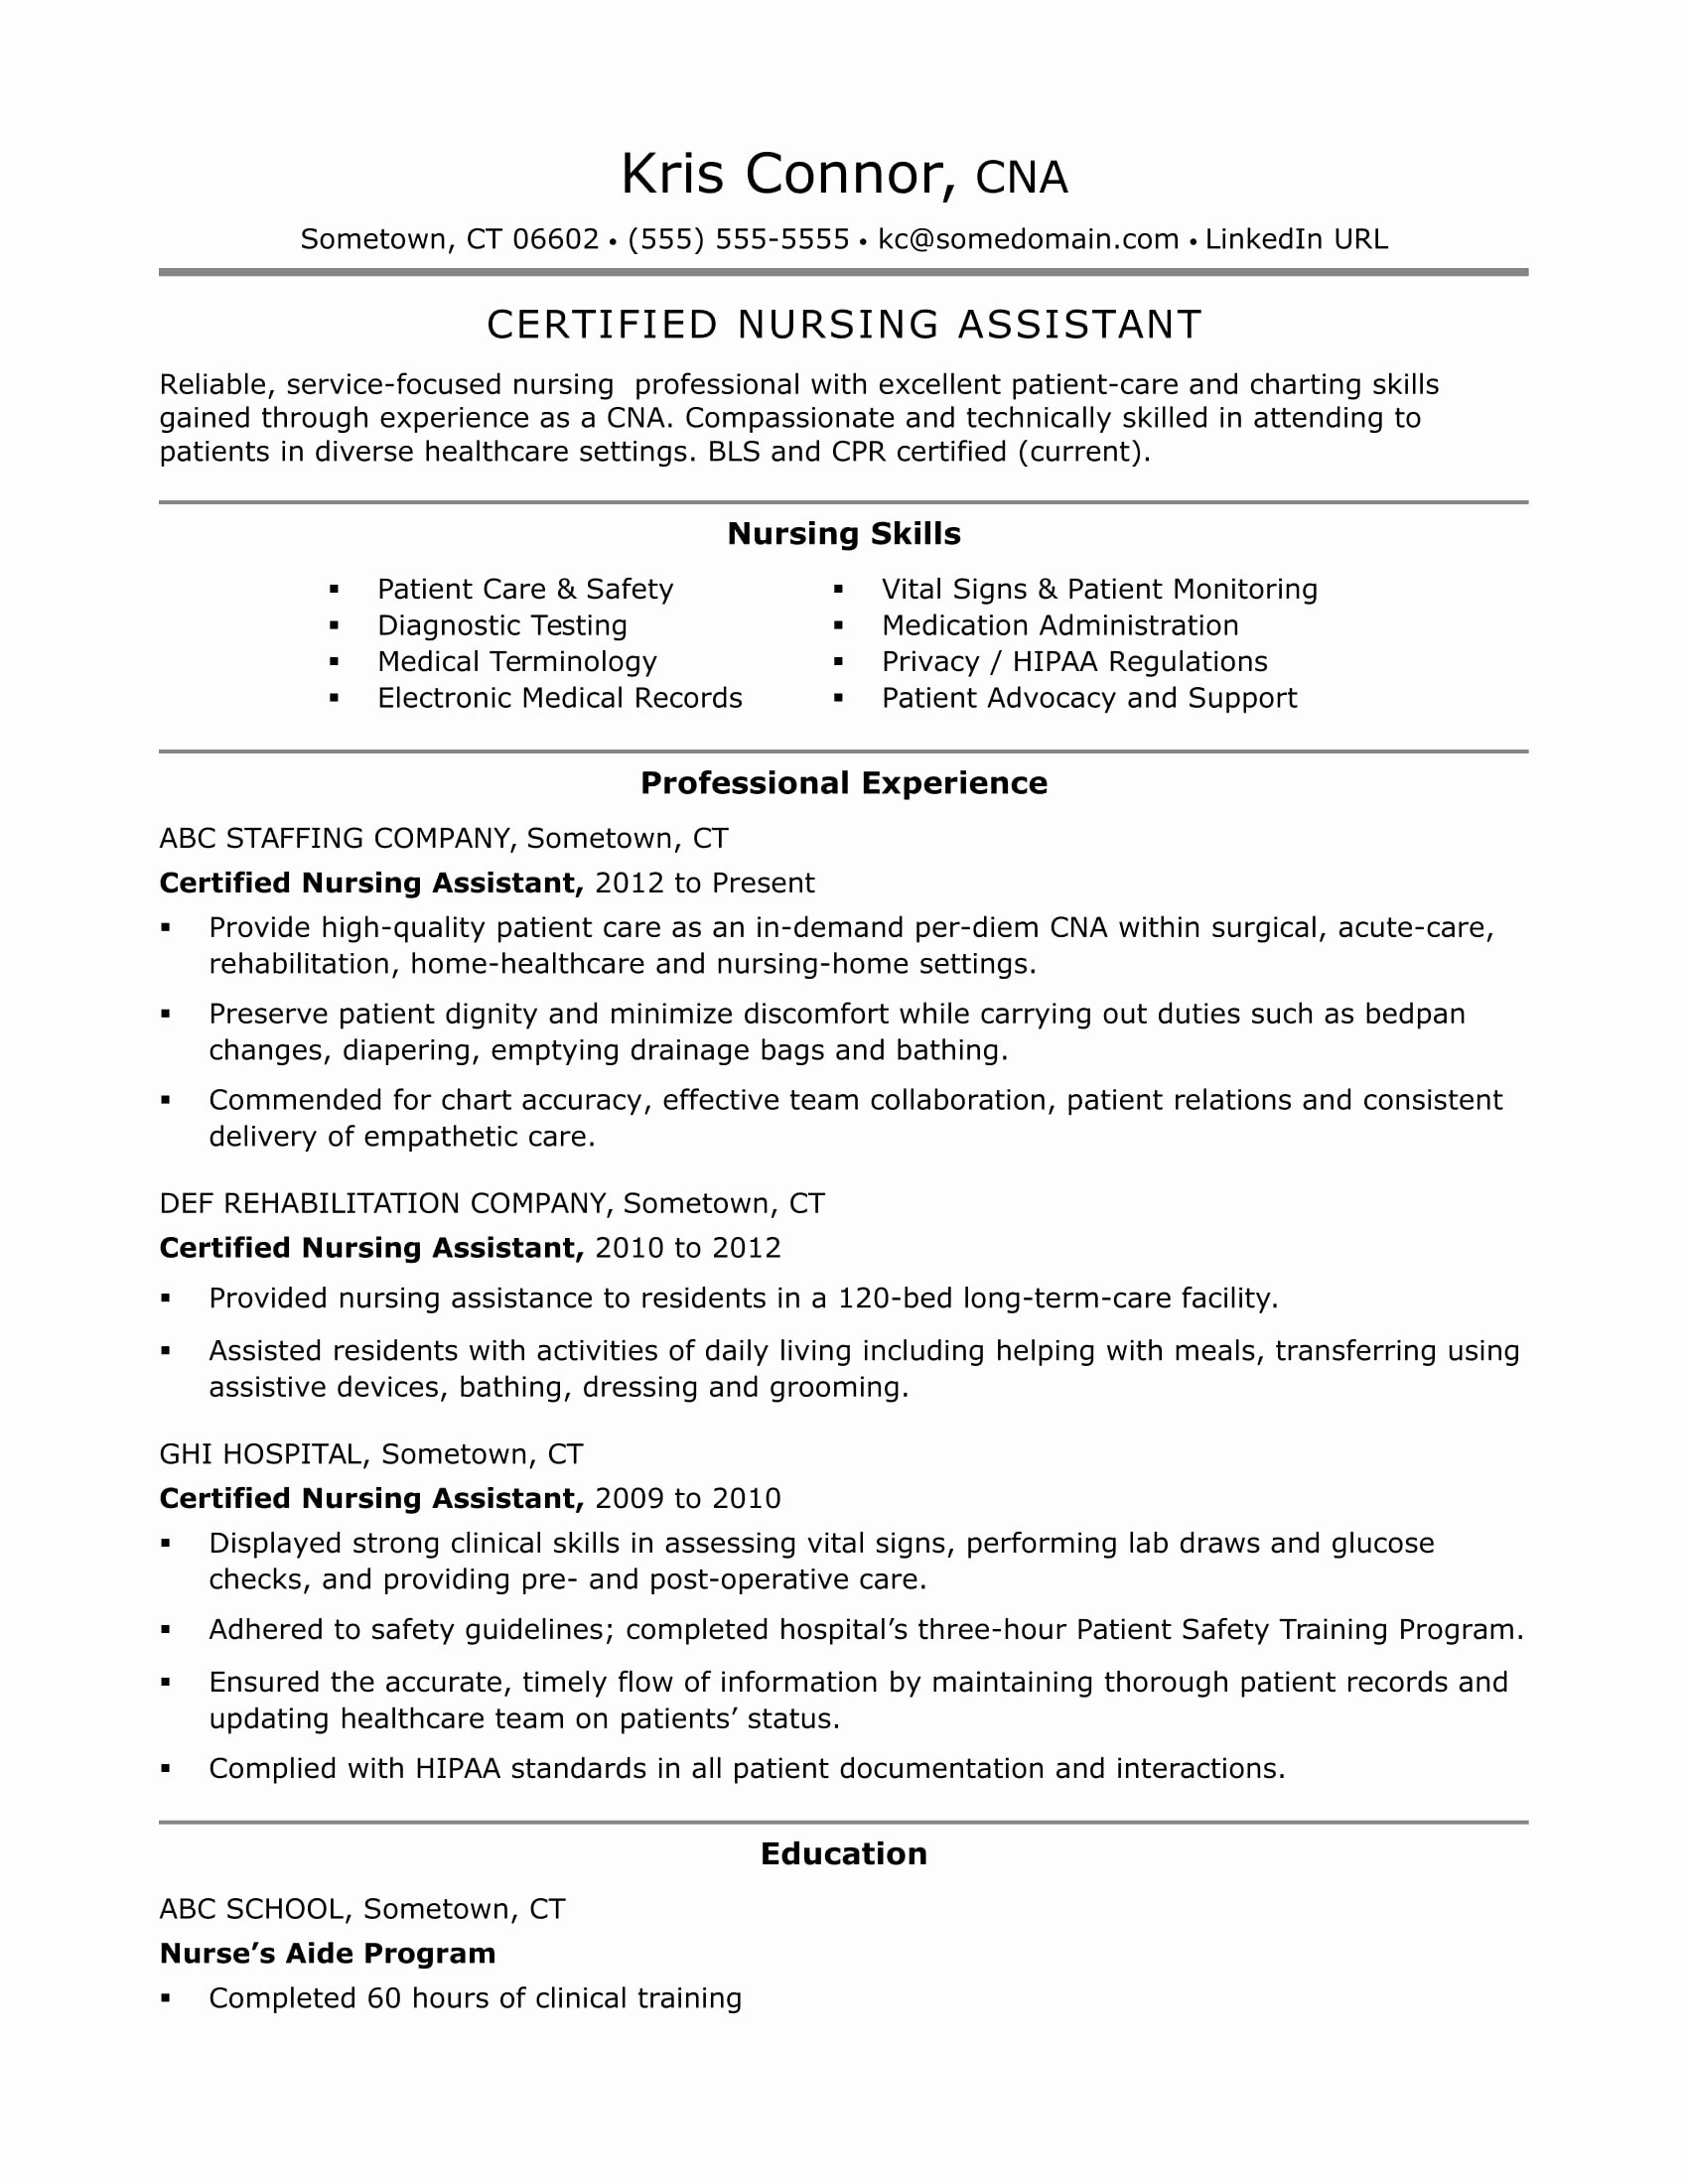 Home Care Nursing Resume - Resume for Nursing Best Best New Nurse Resume Awesome Nurse